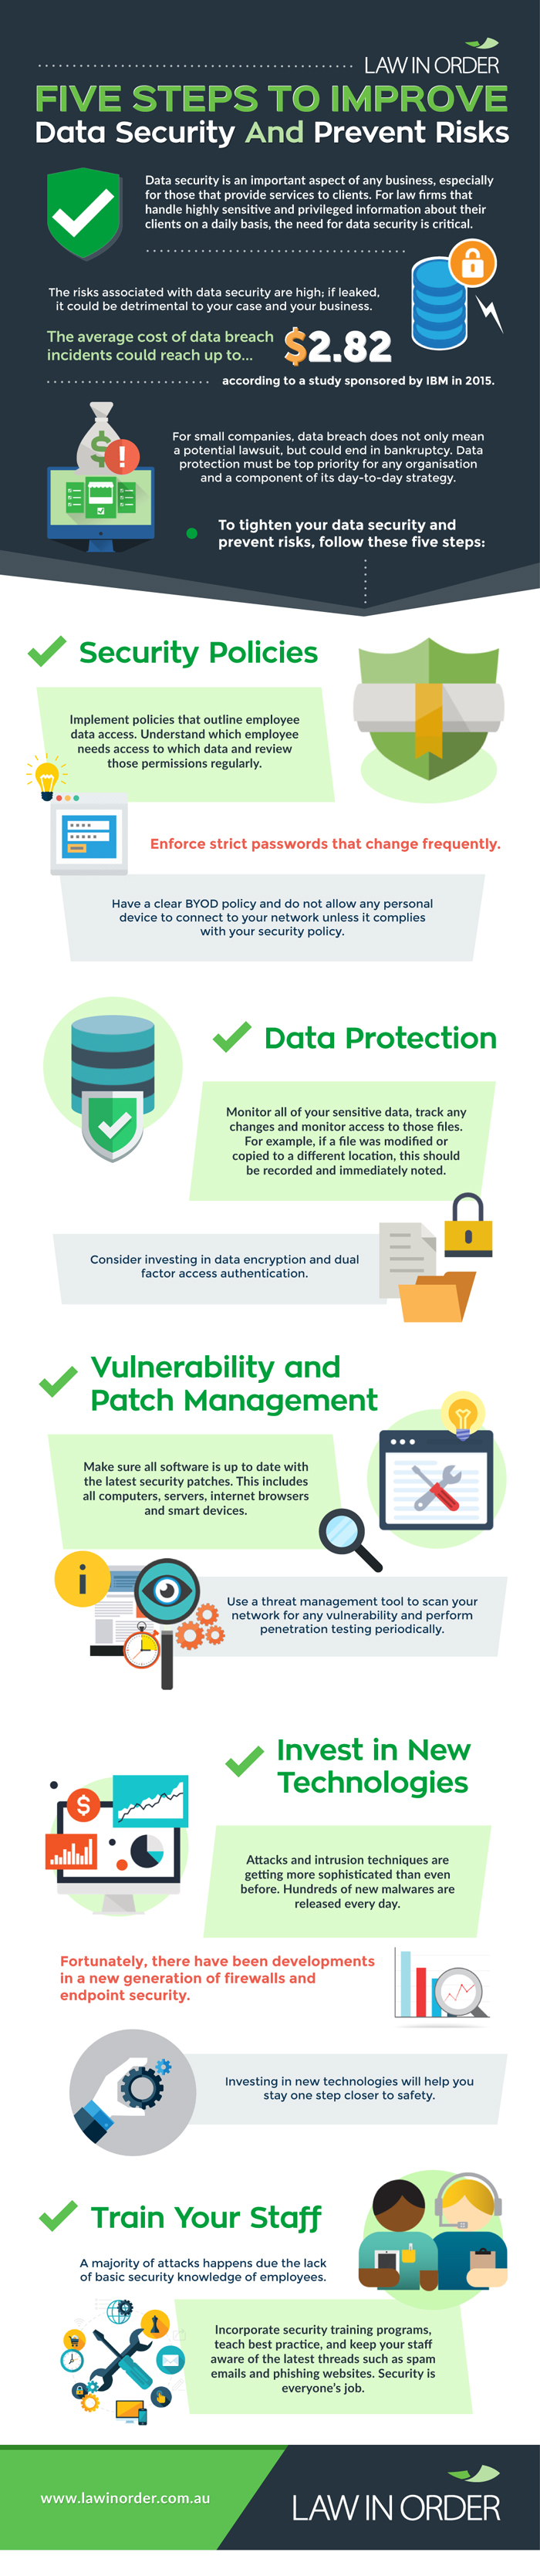 Five-Steps-To-Improve-Data-Security-And-Prevent-Risks